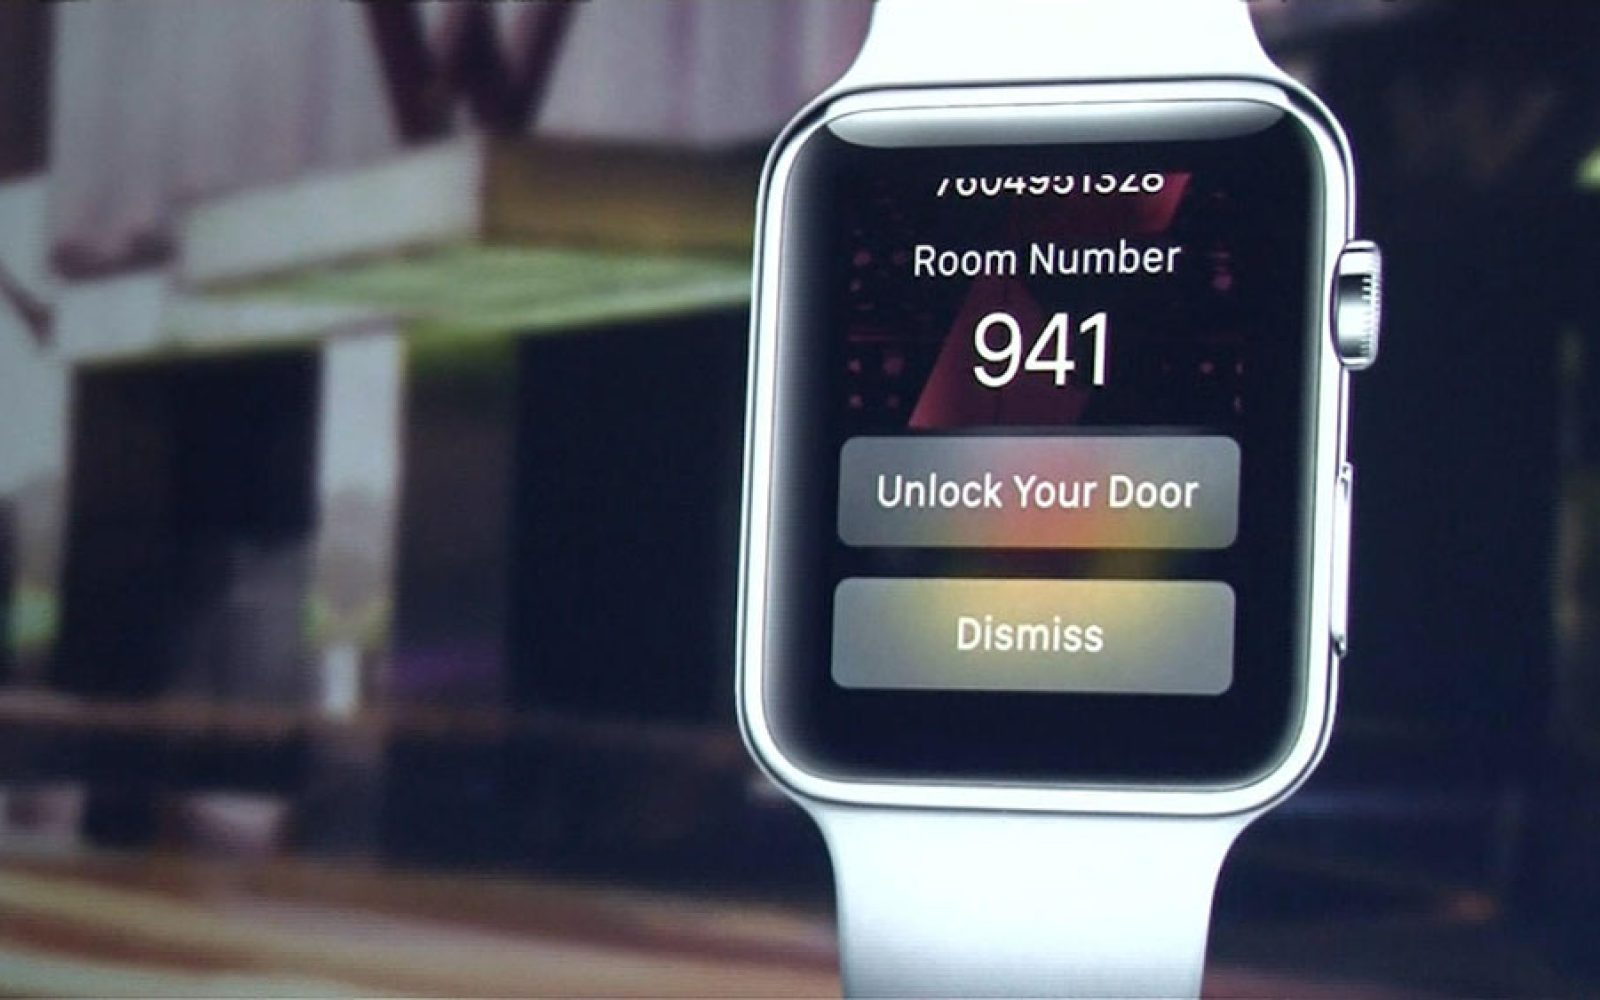 Your Apple Watch can now open your hotel room door at over 100 Starwood Hotels